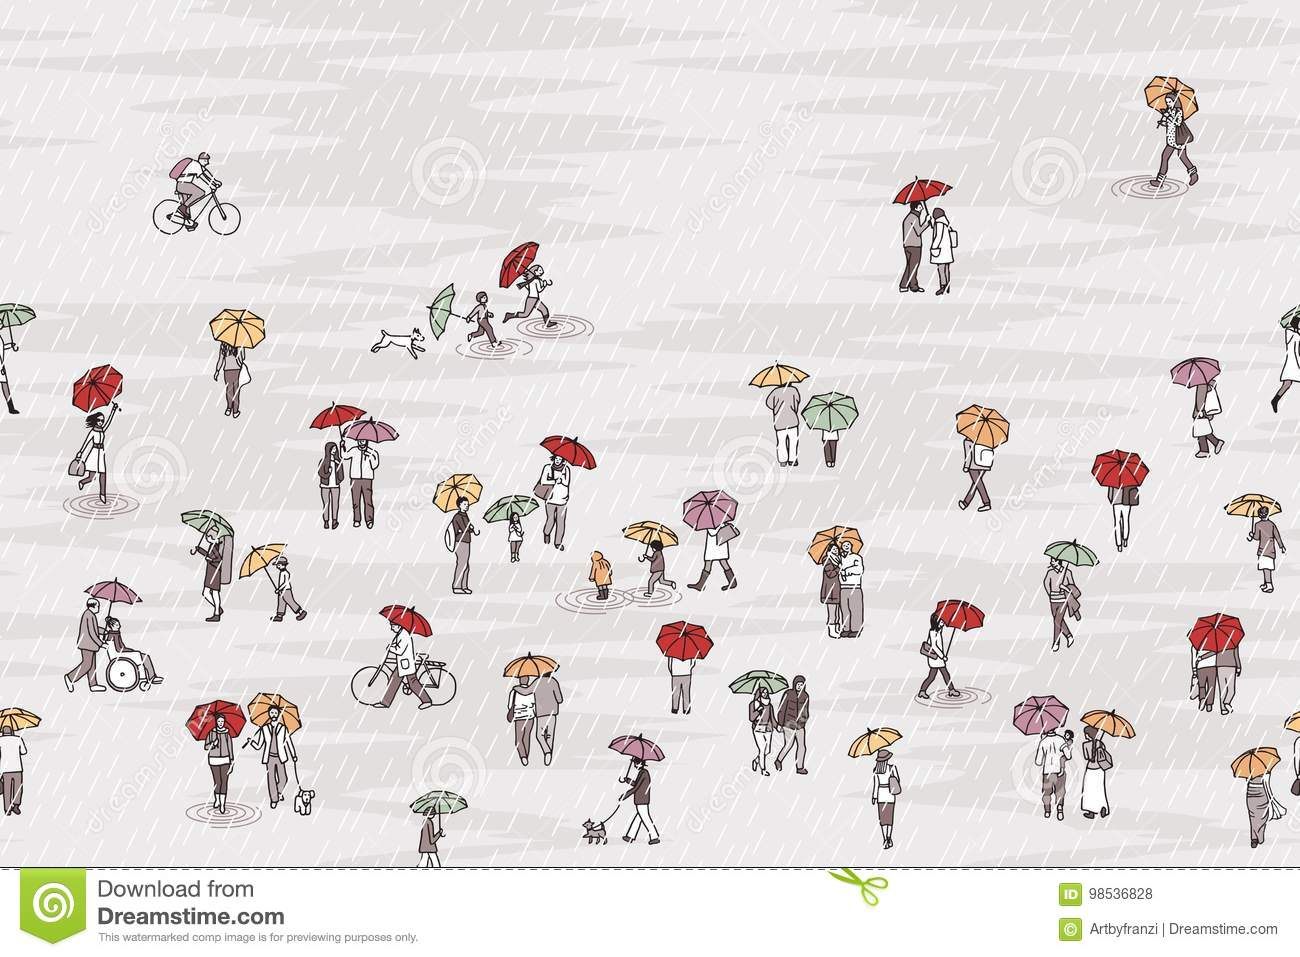 Tiny people with colorful umbrellas